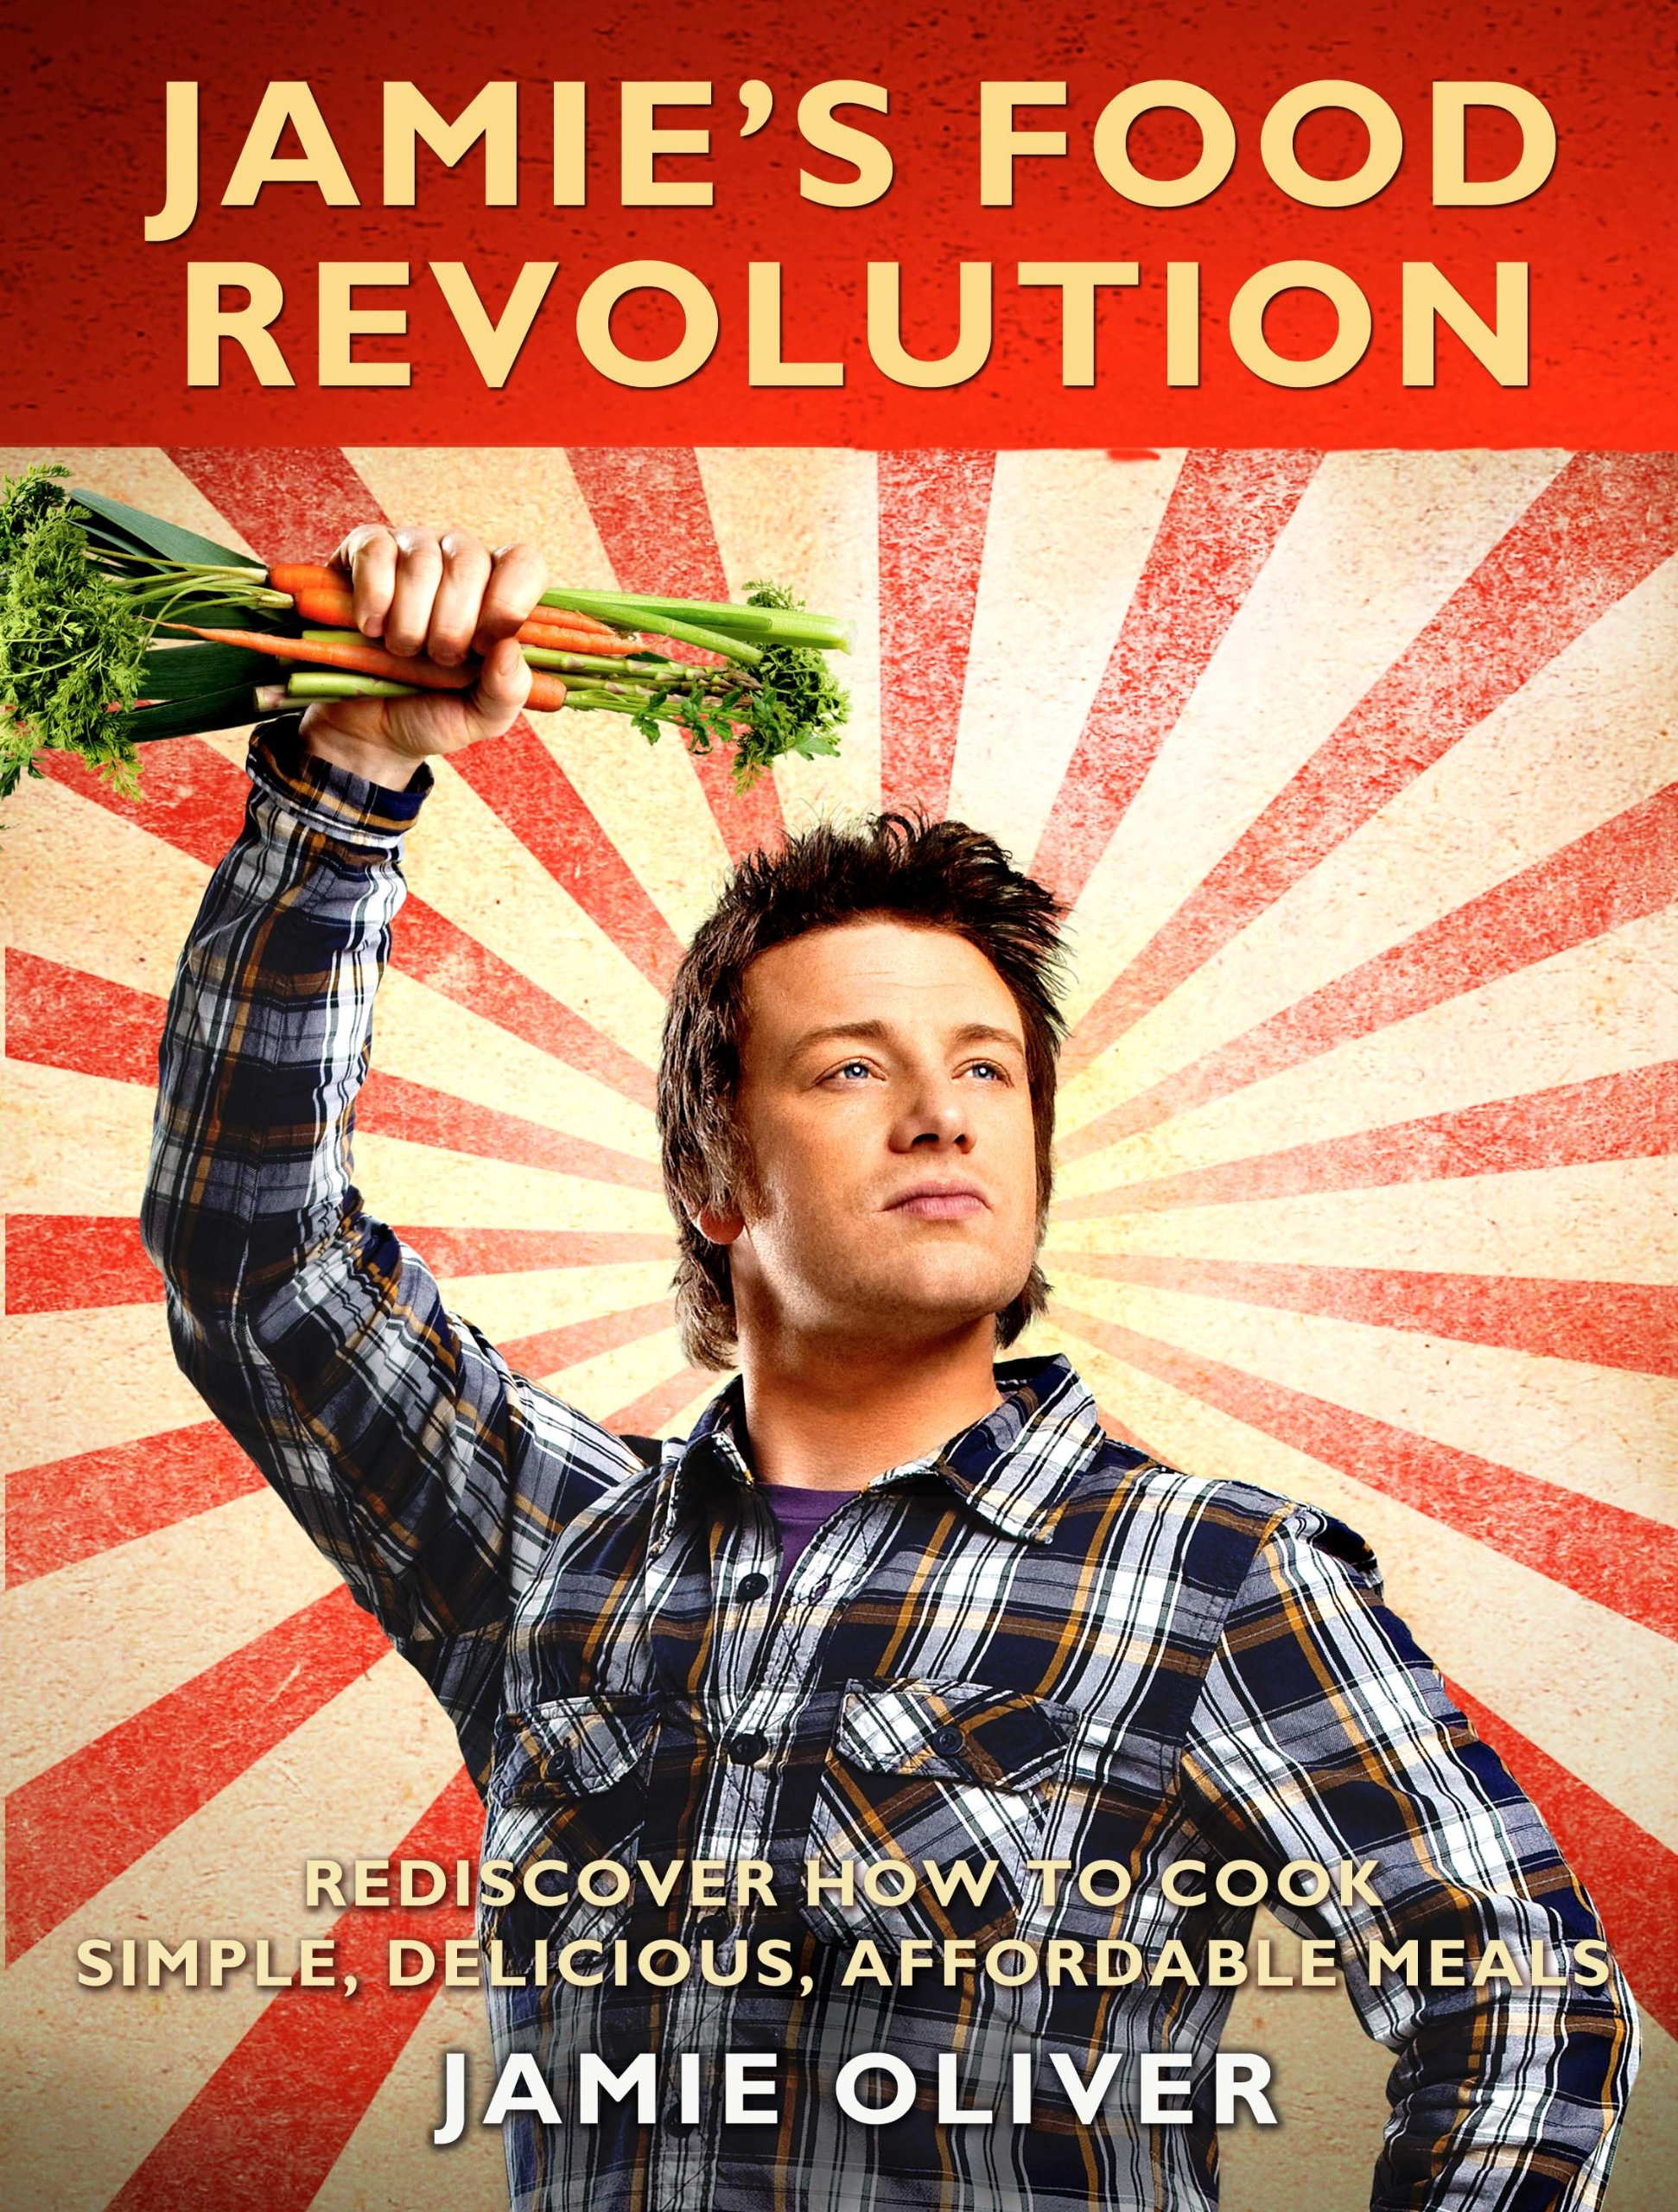 Jamies food revolution rediscover how to cook simple delicious jamies food revolution rediscover how to cook simple delicious affordable meals jamie oliver 8601400745229 books amazon forumfinder Gallery